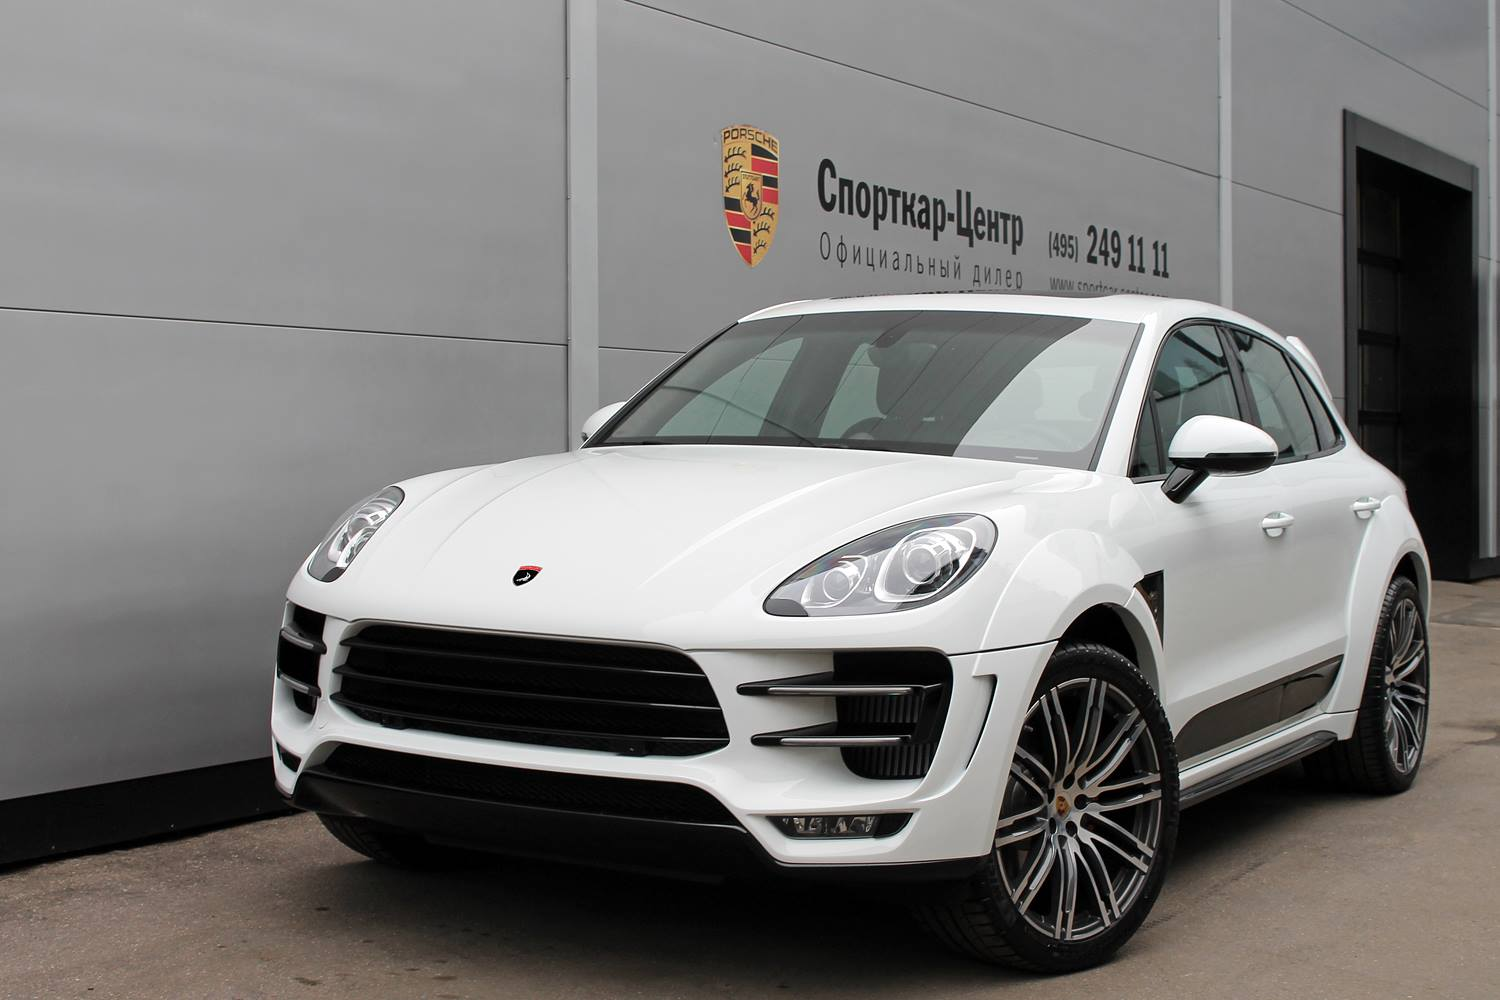 Auto Driving Car >> White Porsche Macan Ursa by Topcar for Sale - autoevolution